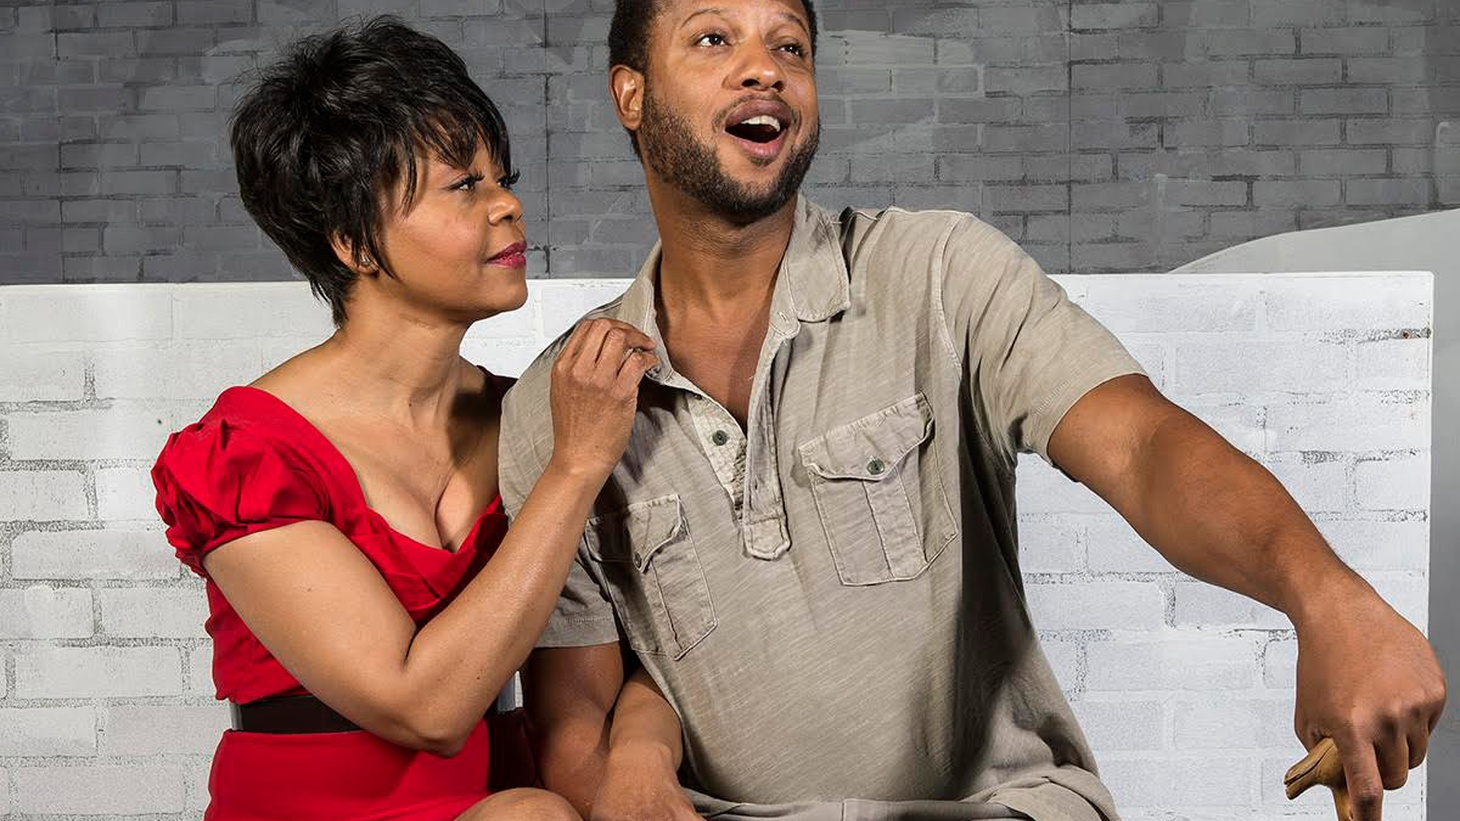 A jazz interpretation of the American opera Porgy and Bess debuts this weekend at the New Vic Theater in Santa Barbara.KCRW's Larry Perel spoke with the starring actors about the history behind the production and why the story is just as relevant today.